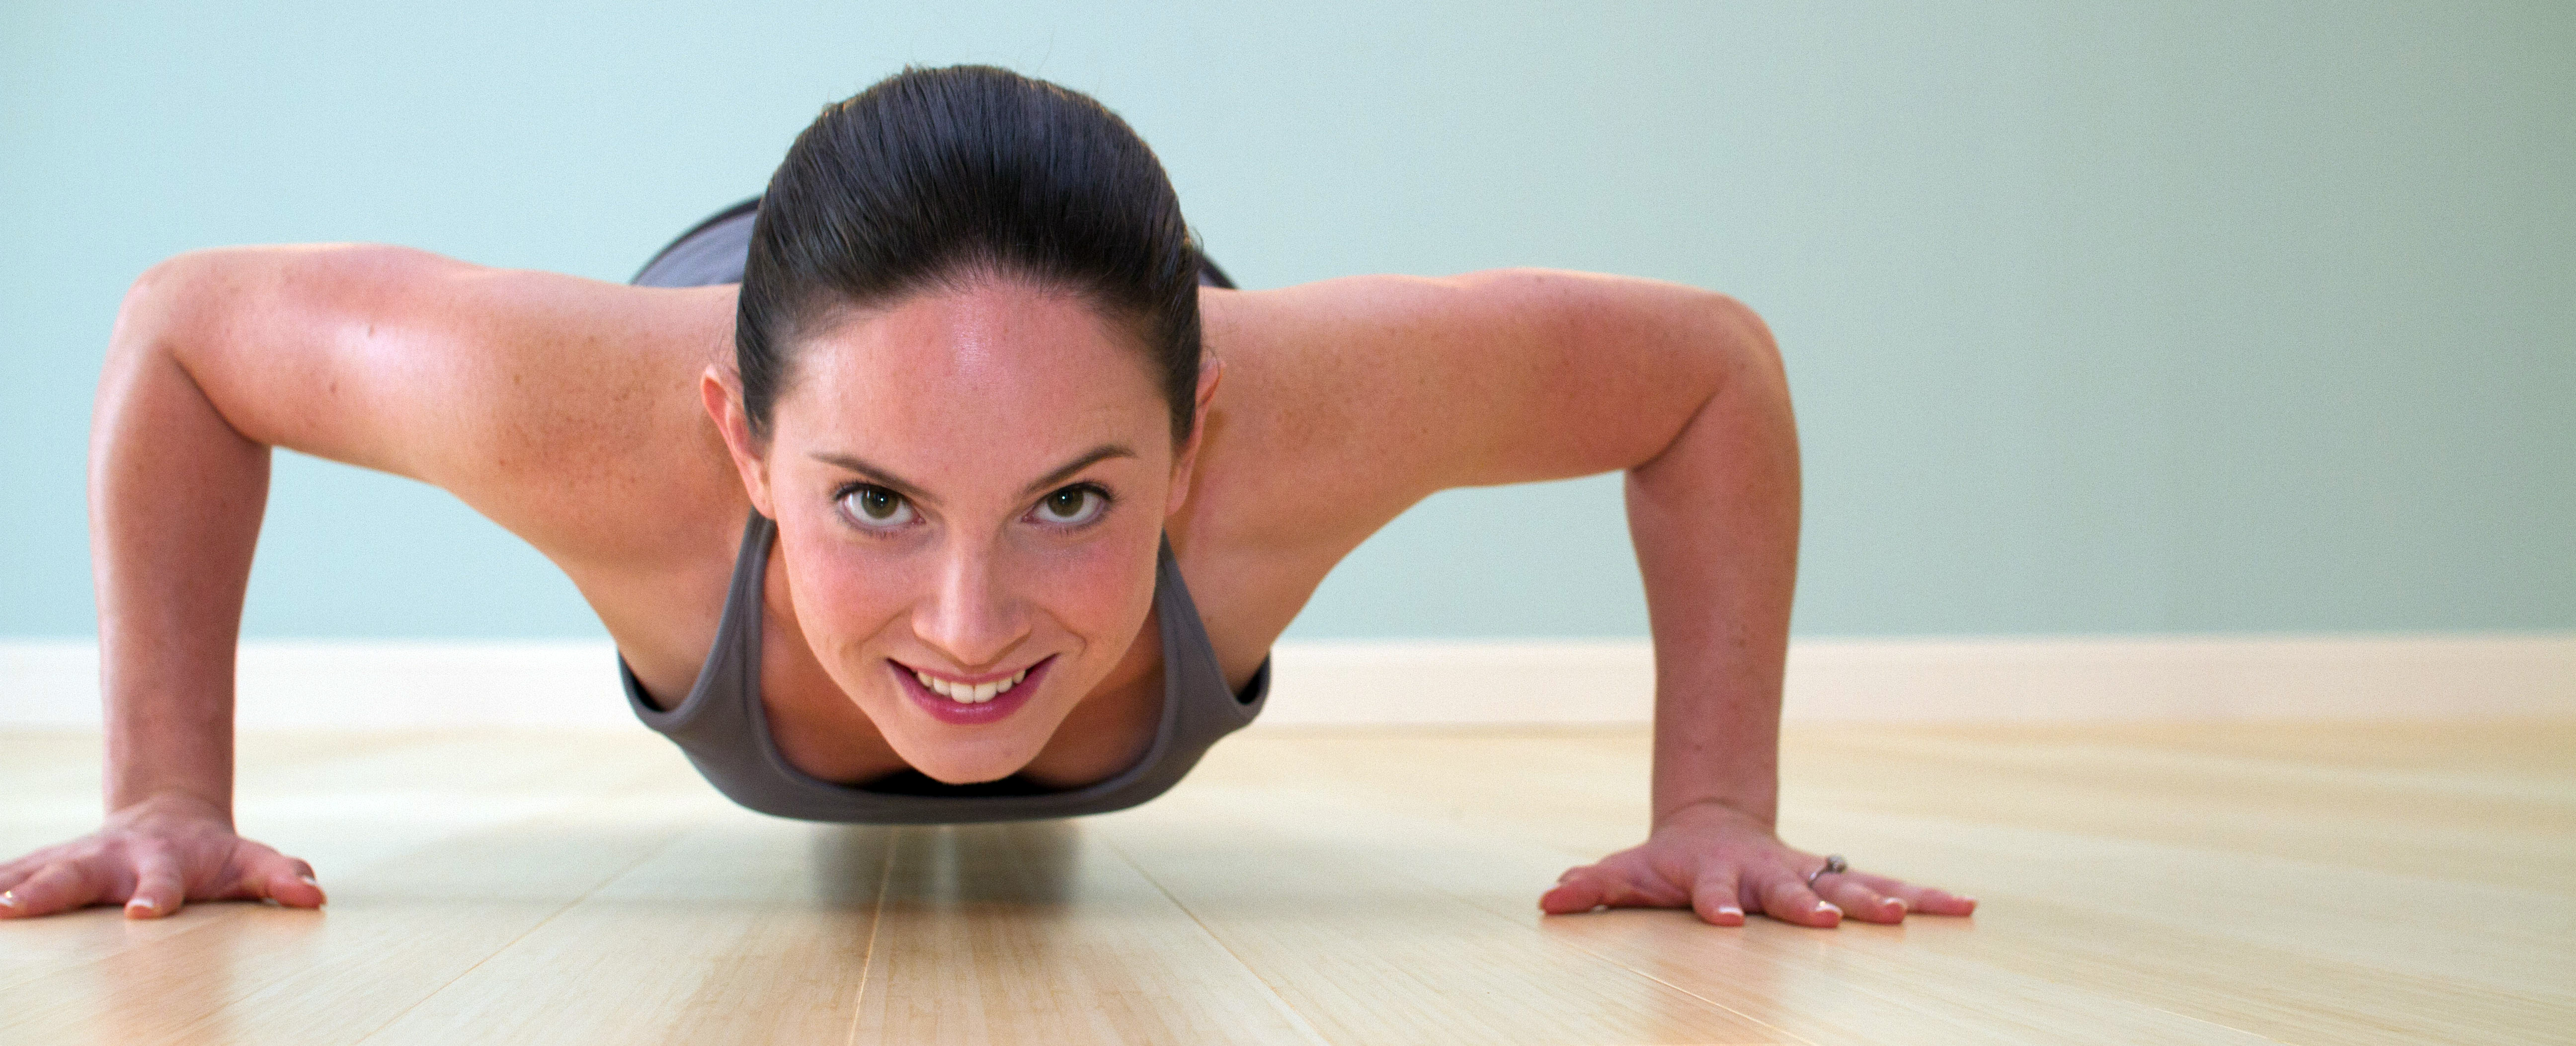 hiit-high-intensity-interval-training